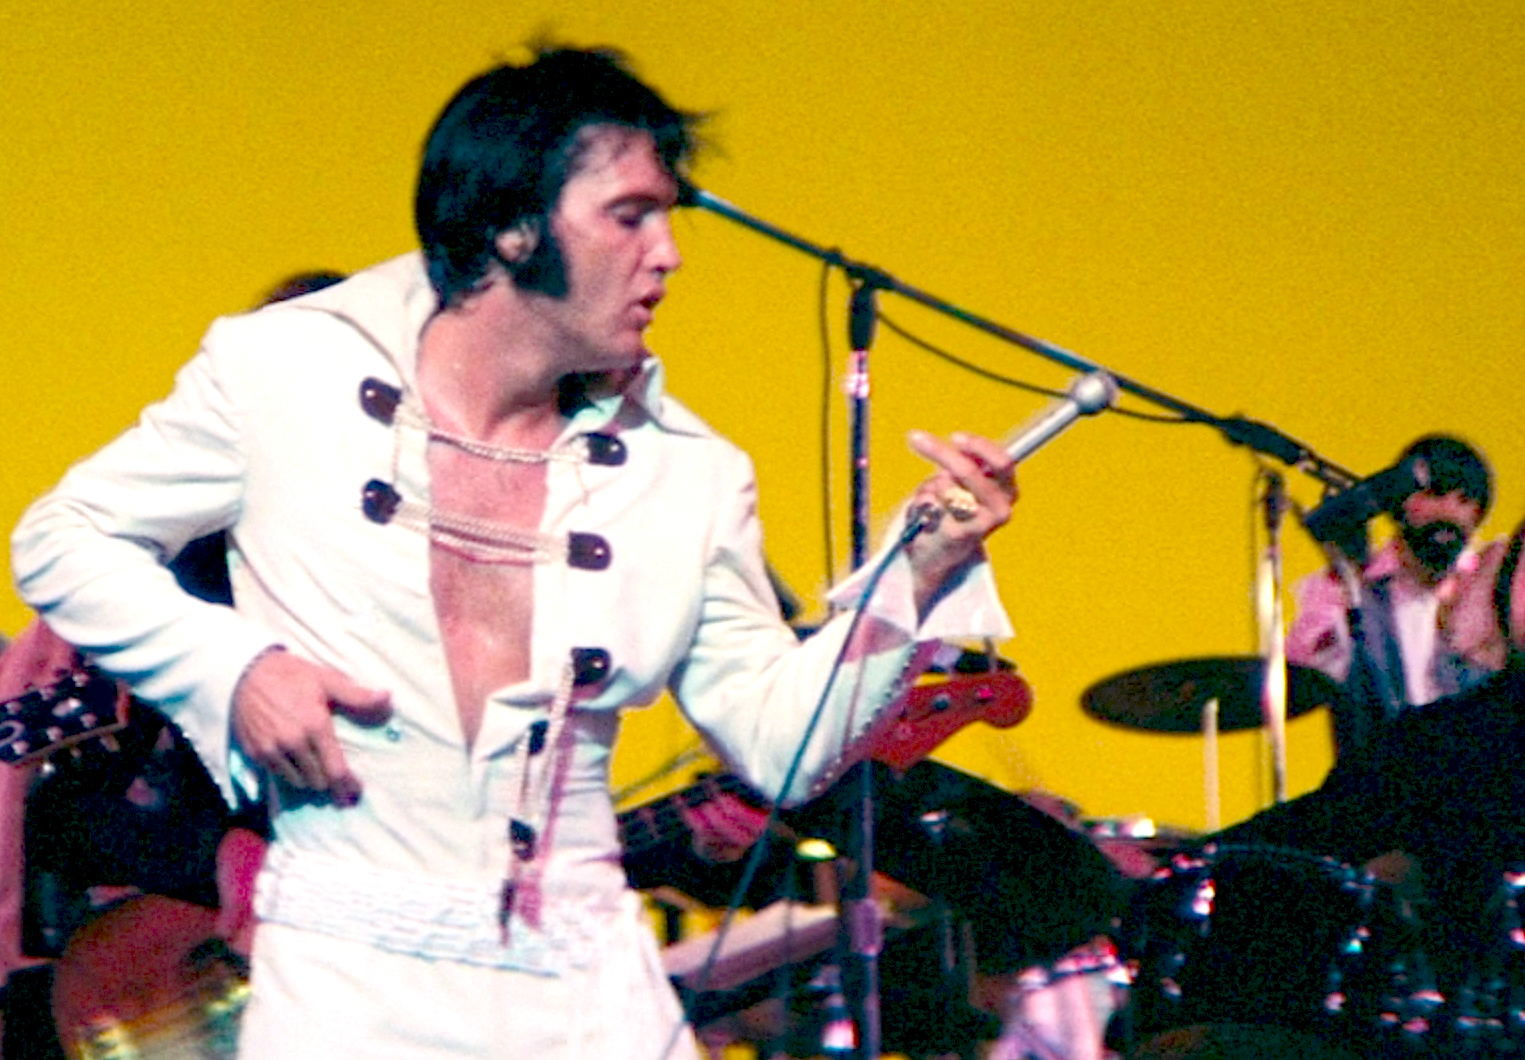 http://elvisnews.dk/wp-content/uploads/2016/02/ELVIS_EDDIE_GRAHAM_1970_02.jpg